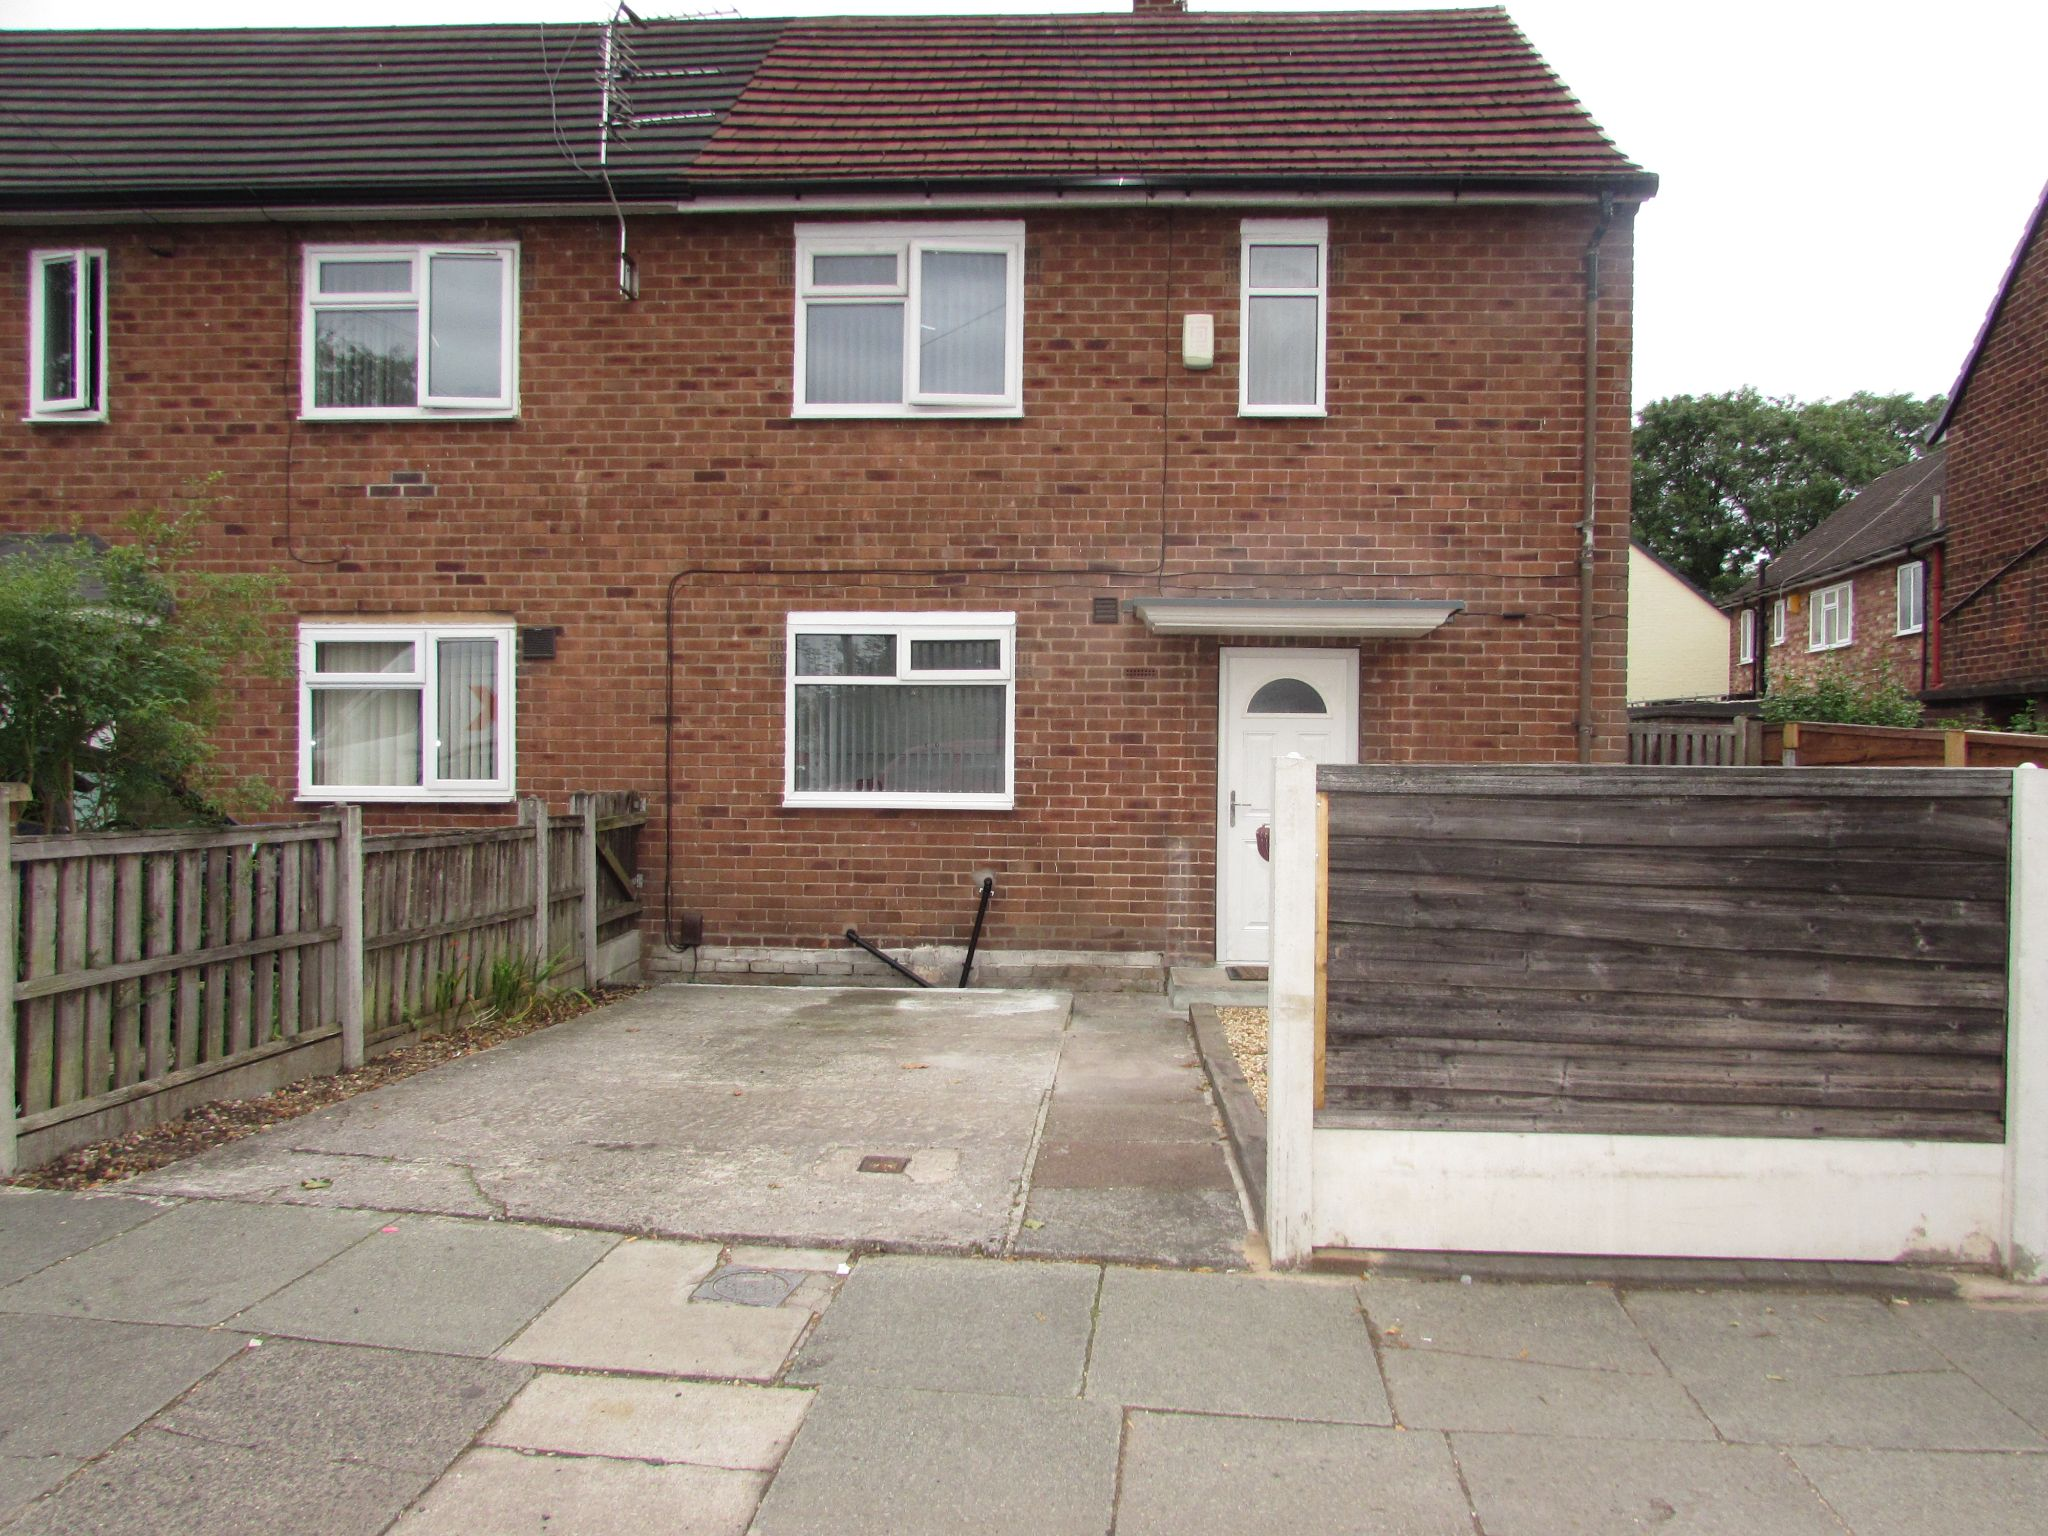 2 Bedroom End Terraced House To Rent - Photograph 1